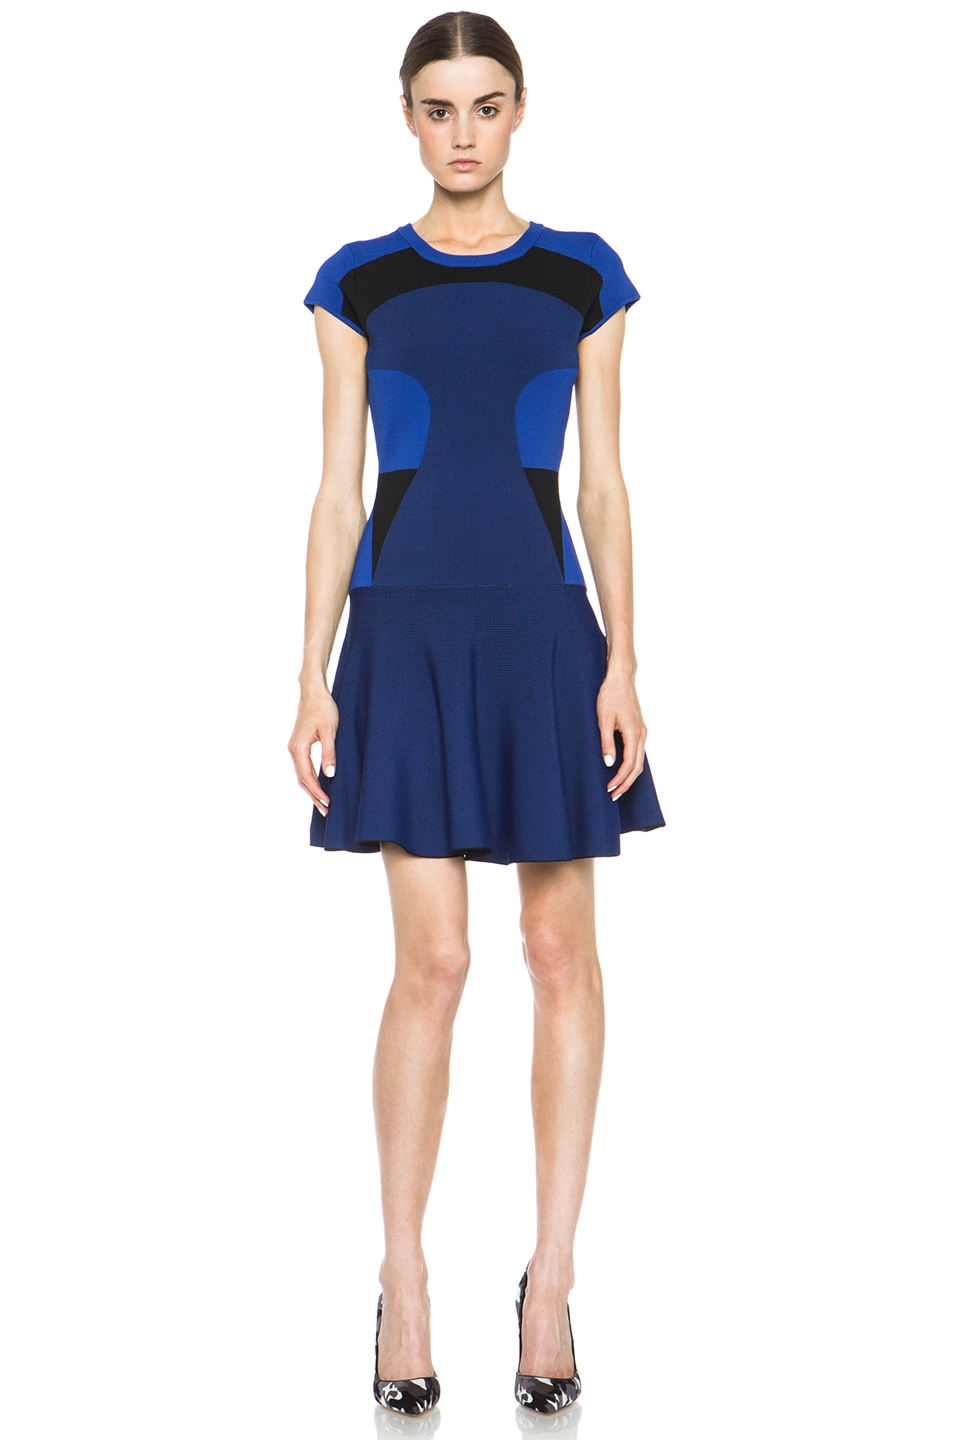 Image 1 of Diane von Furstenberg Renee Dress in Vivid Blue & Black